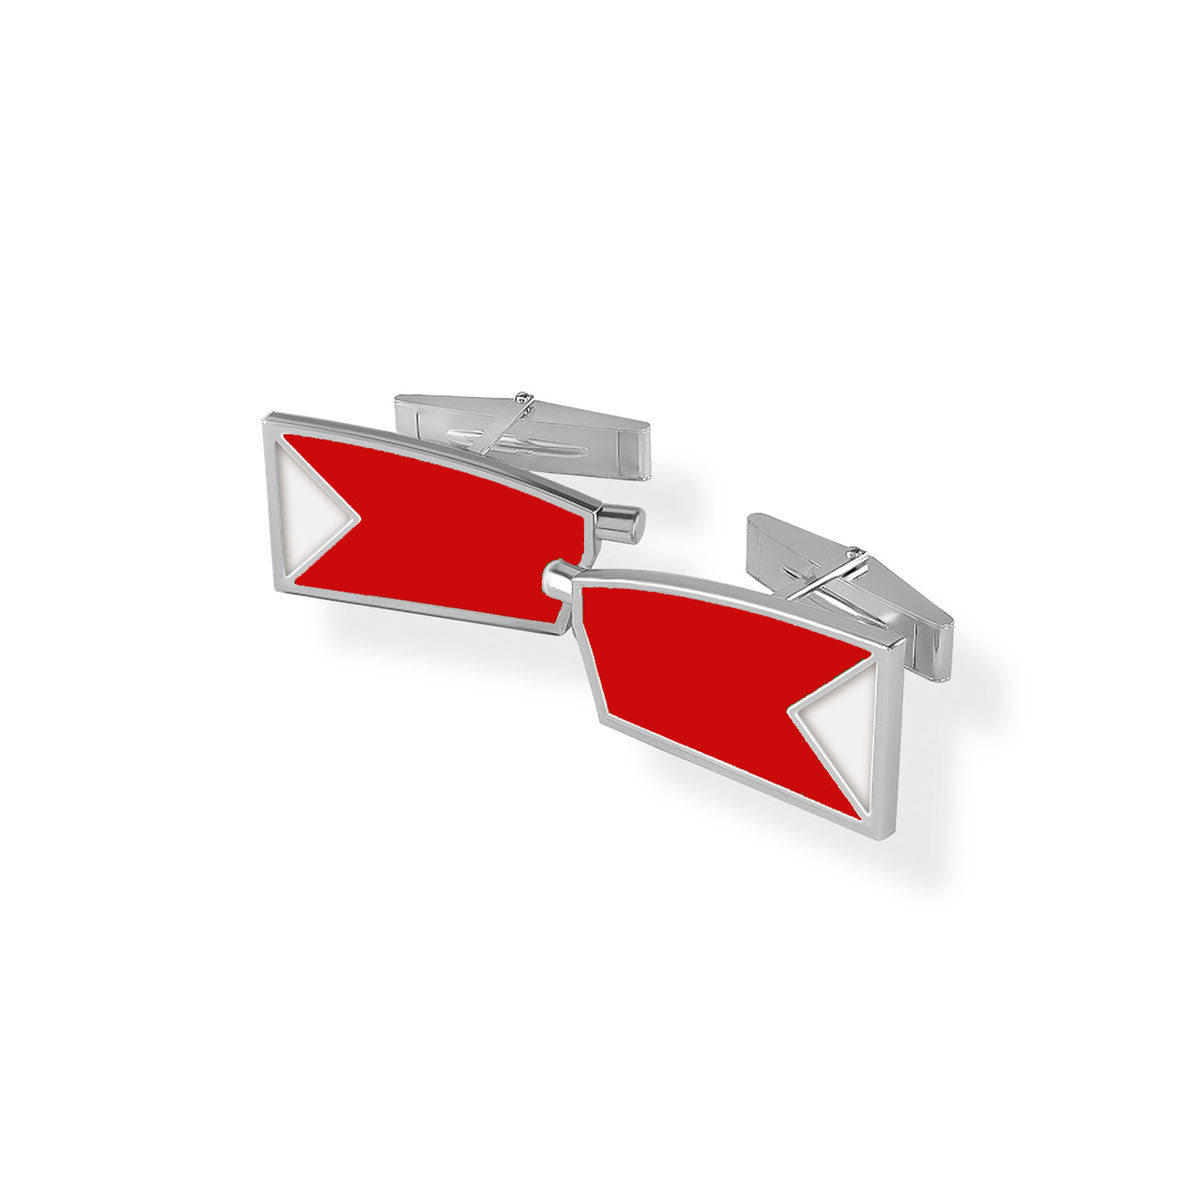 Rowing Custom Oar Cufflinks - MARIN - Strokeside Designs Rowing jewelry- Rowing Gifts Ideas- Rowing Coach Gifts